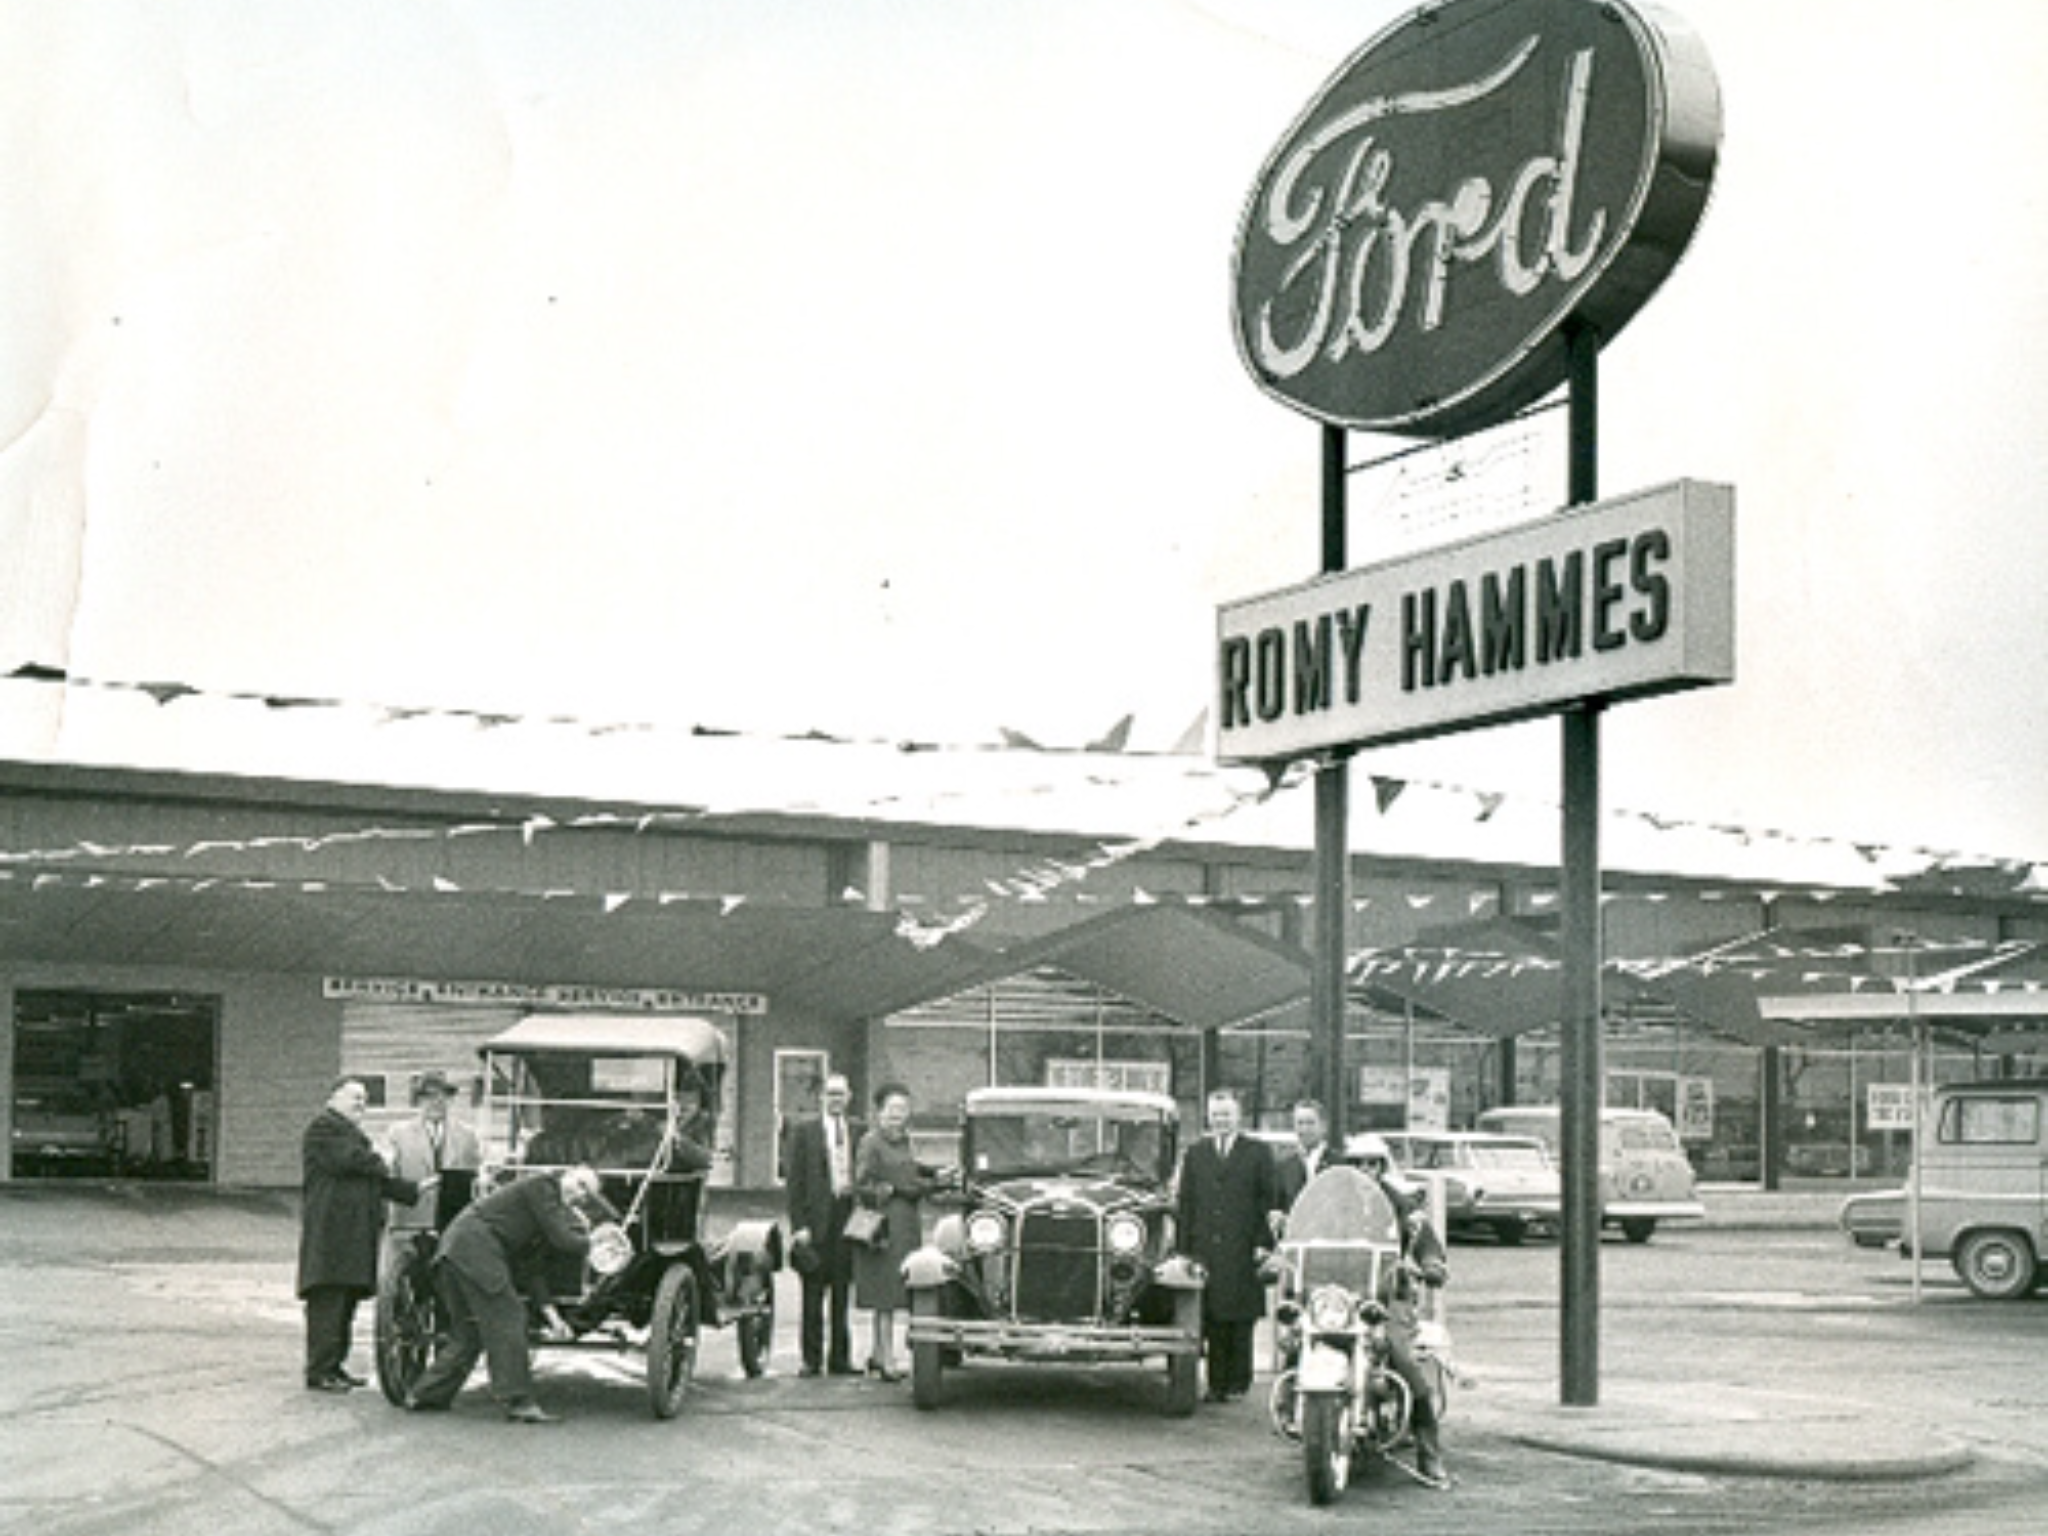 1960 S Romy Hammes Ford Dealership South Bend Indiana South